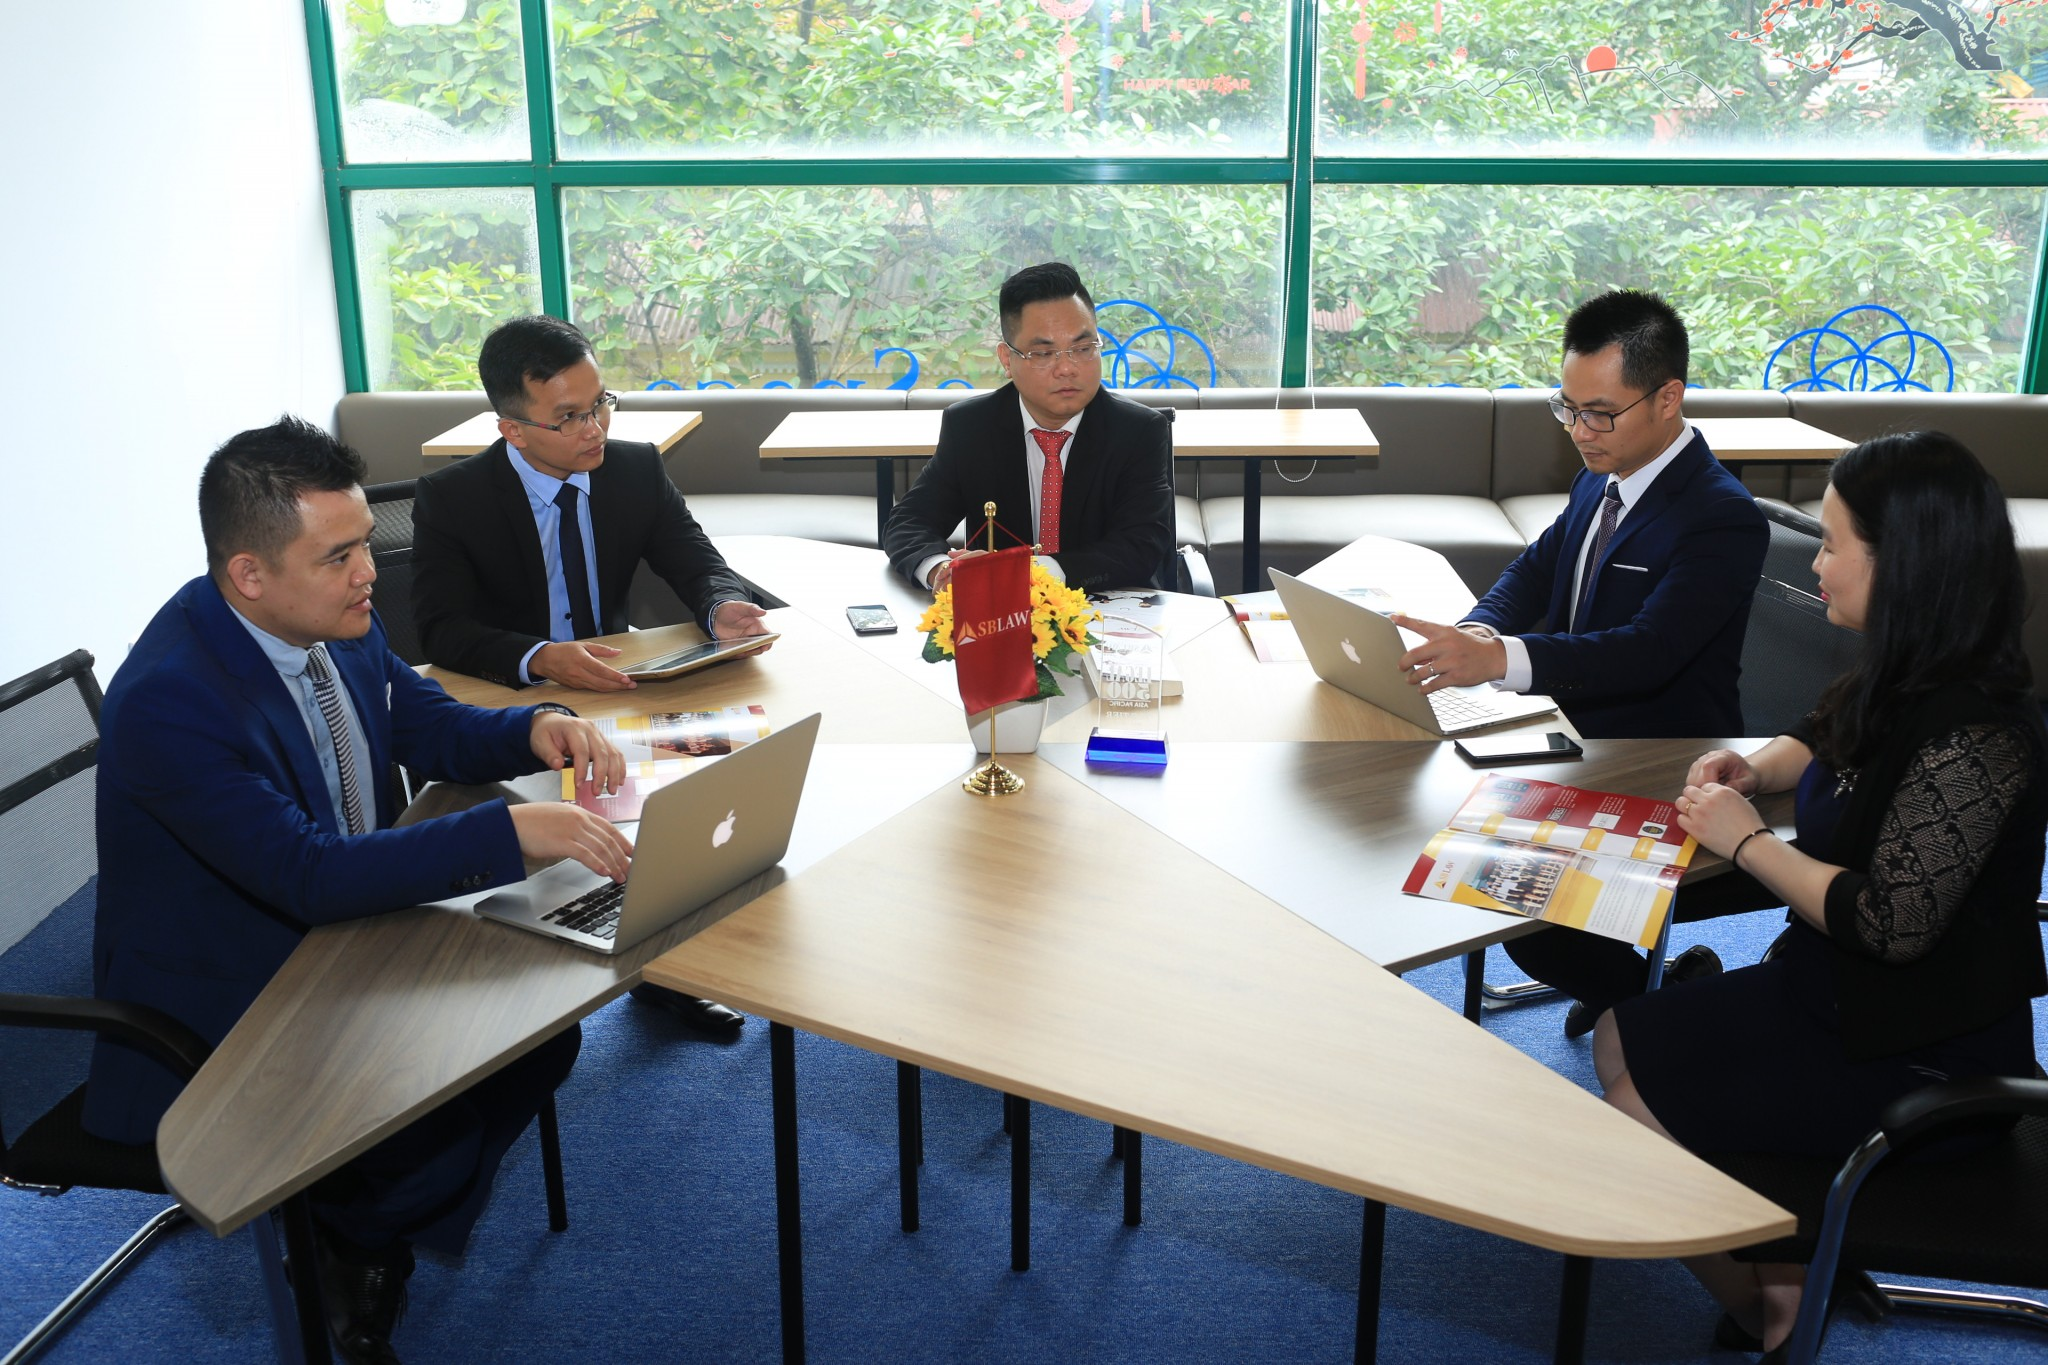 Law on mediation and Dialogue at the Court in Vietnam